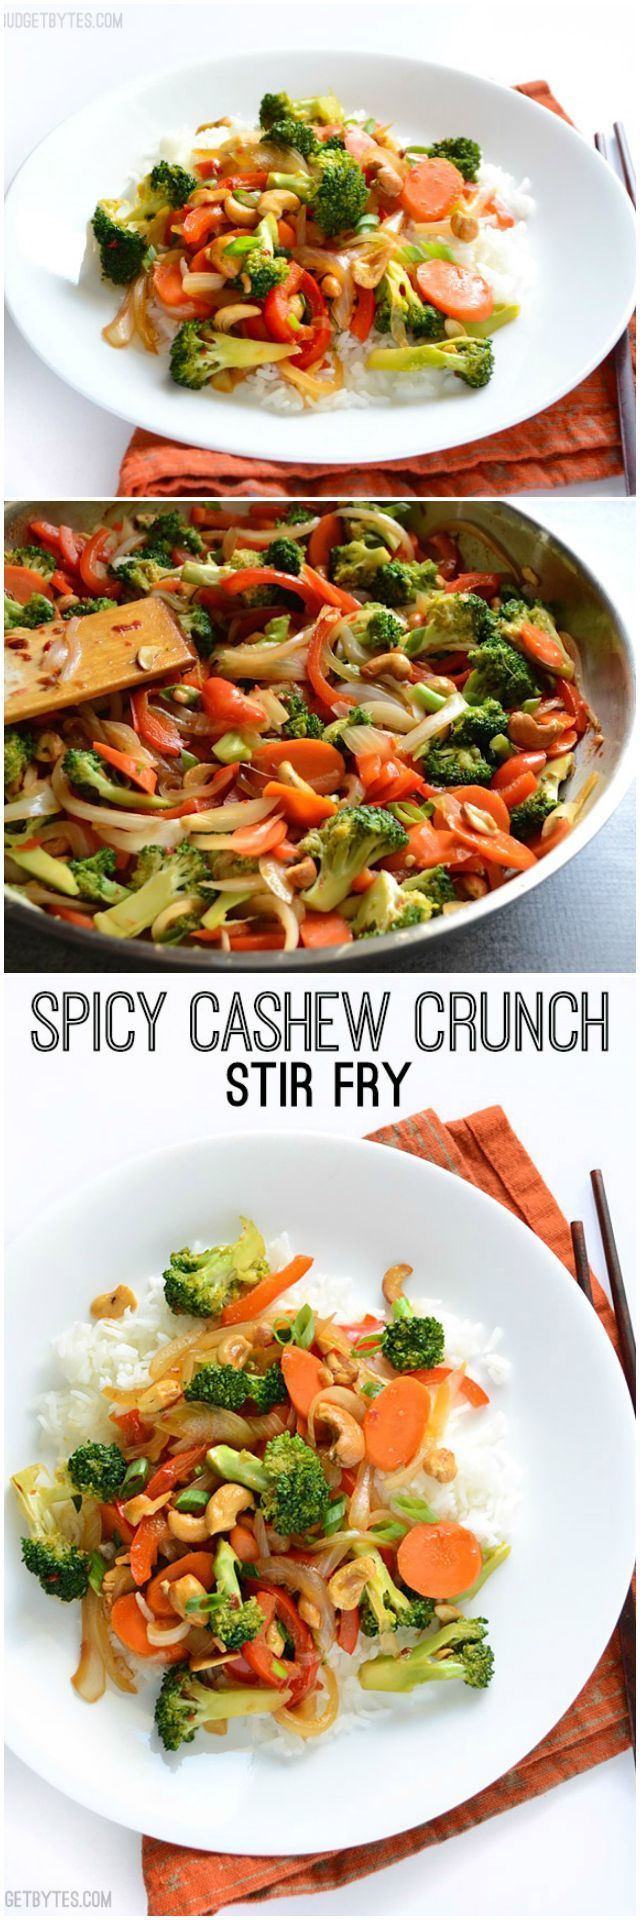 This simple Spicy Cashew Crunch Stir Fry has an extra spicy sauce, crunchy cashews, and lightly stir fried vegetables. Delicious dinner made fast! @budgetbytes